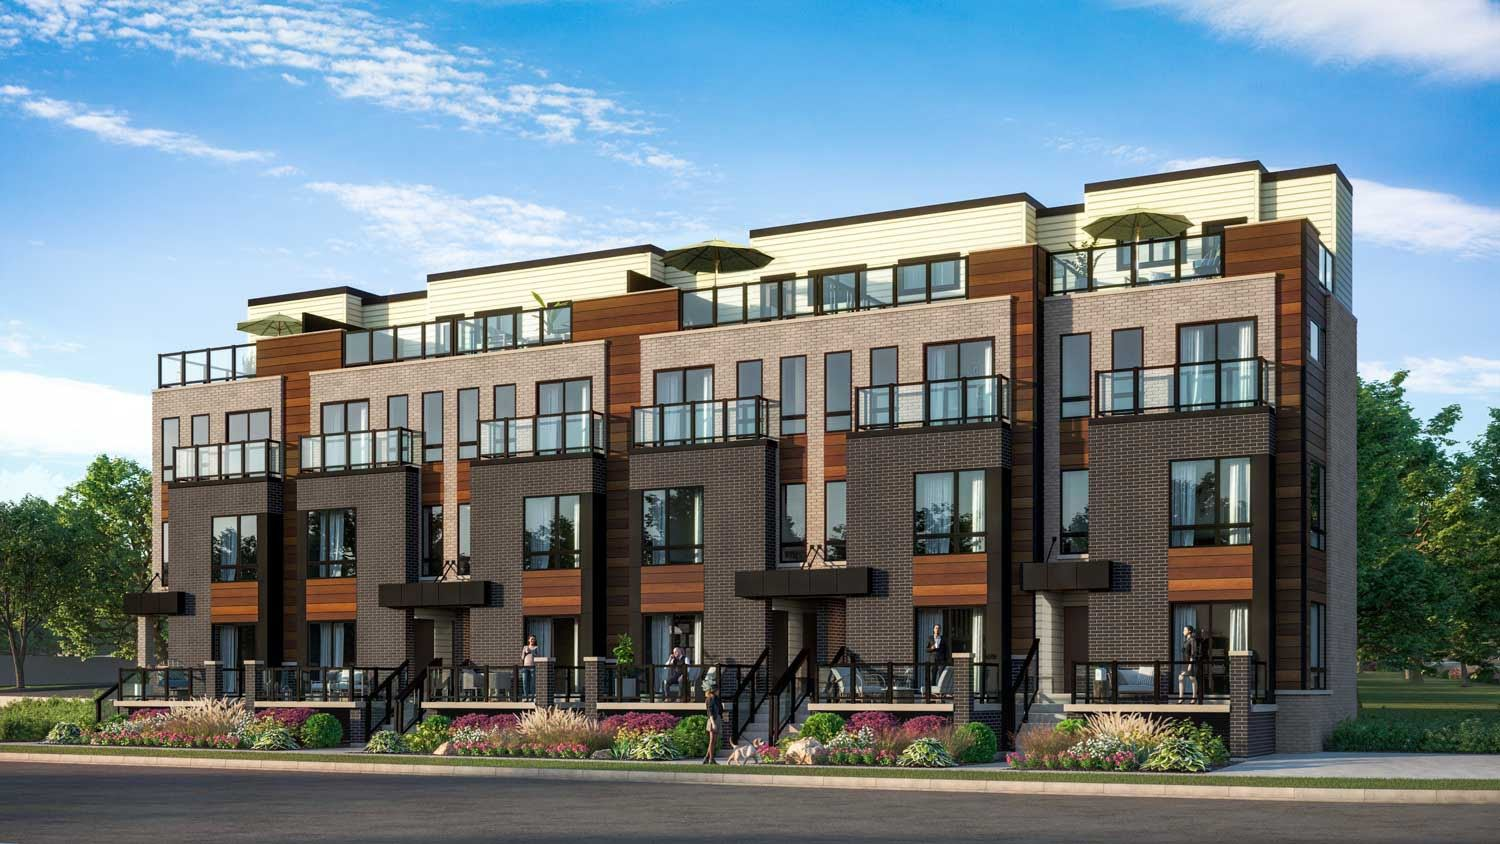 Scarborough Modern Town homes Builders Introductory Price From $629K